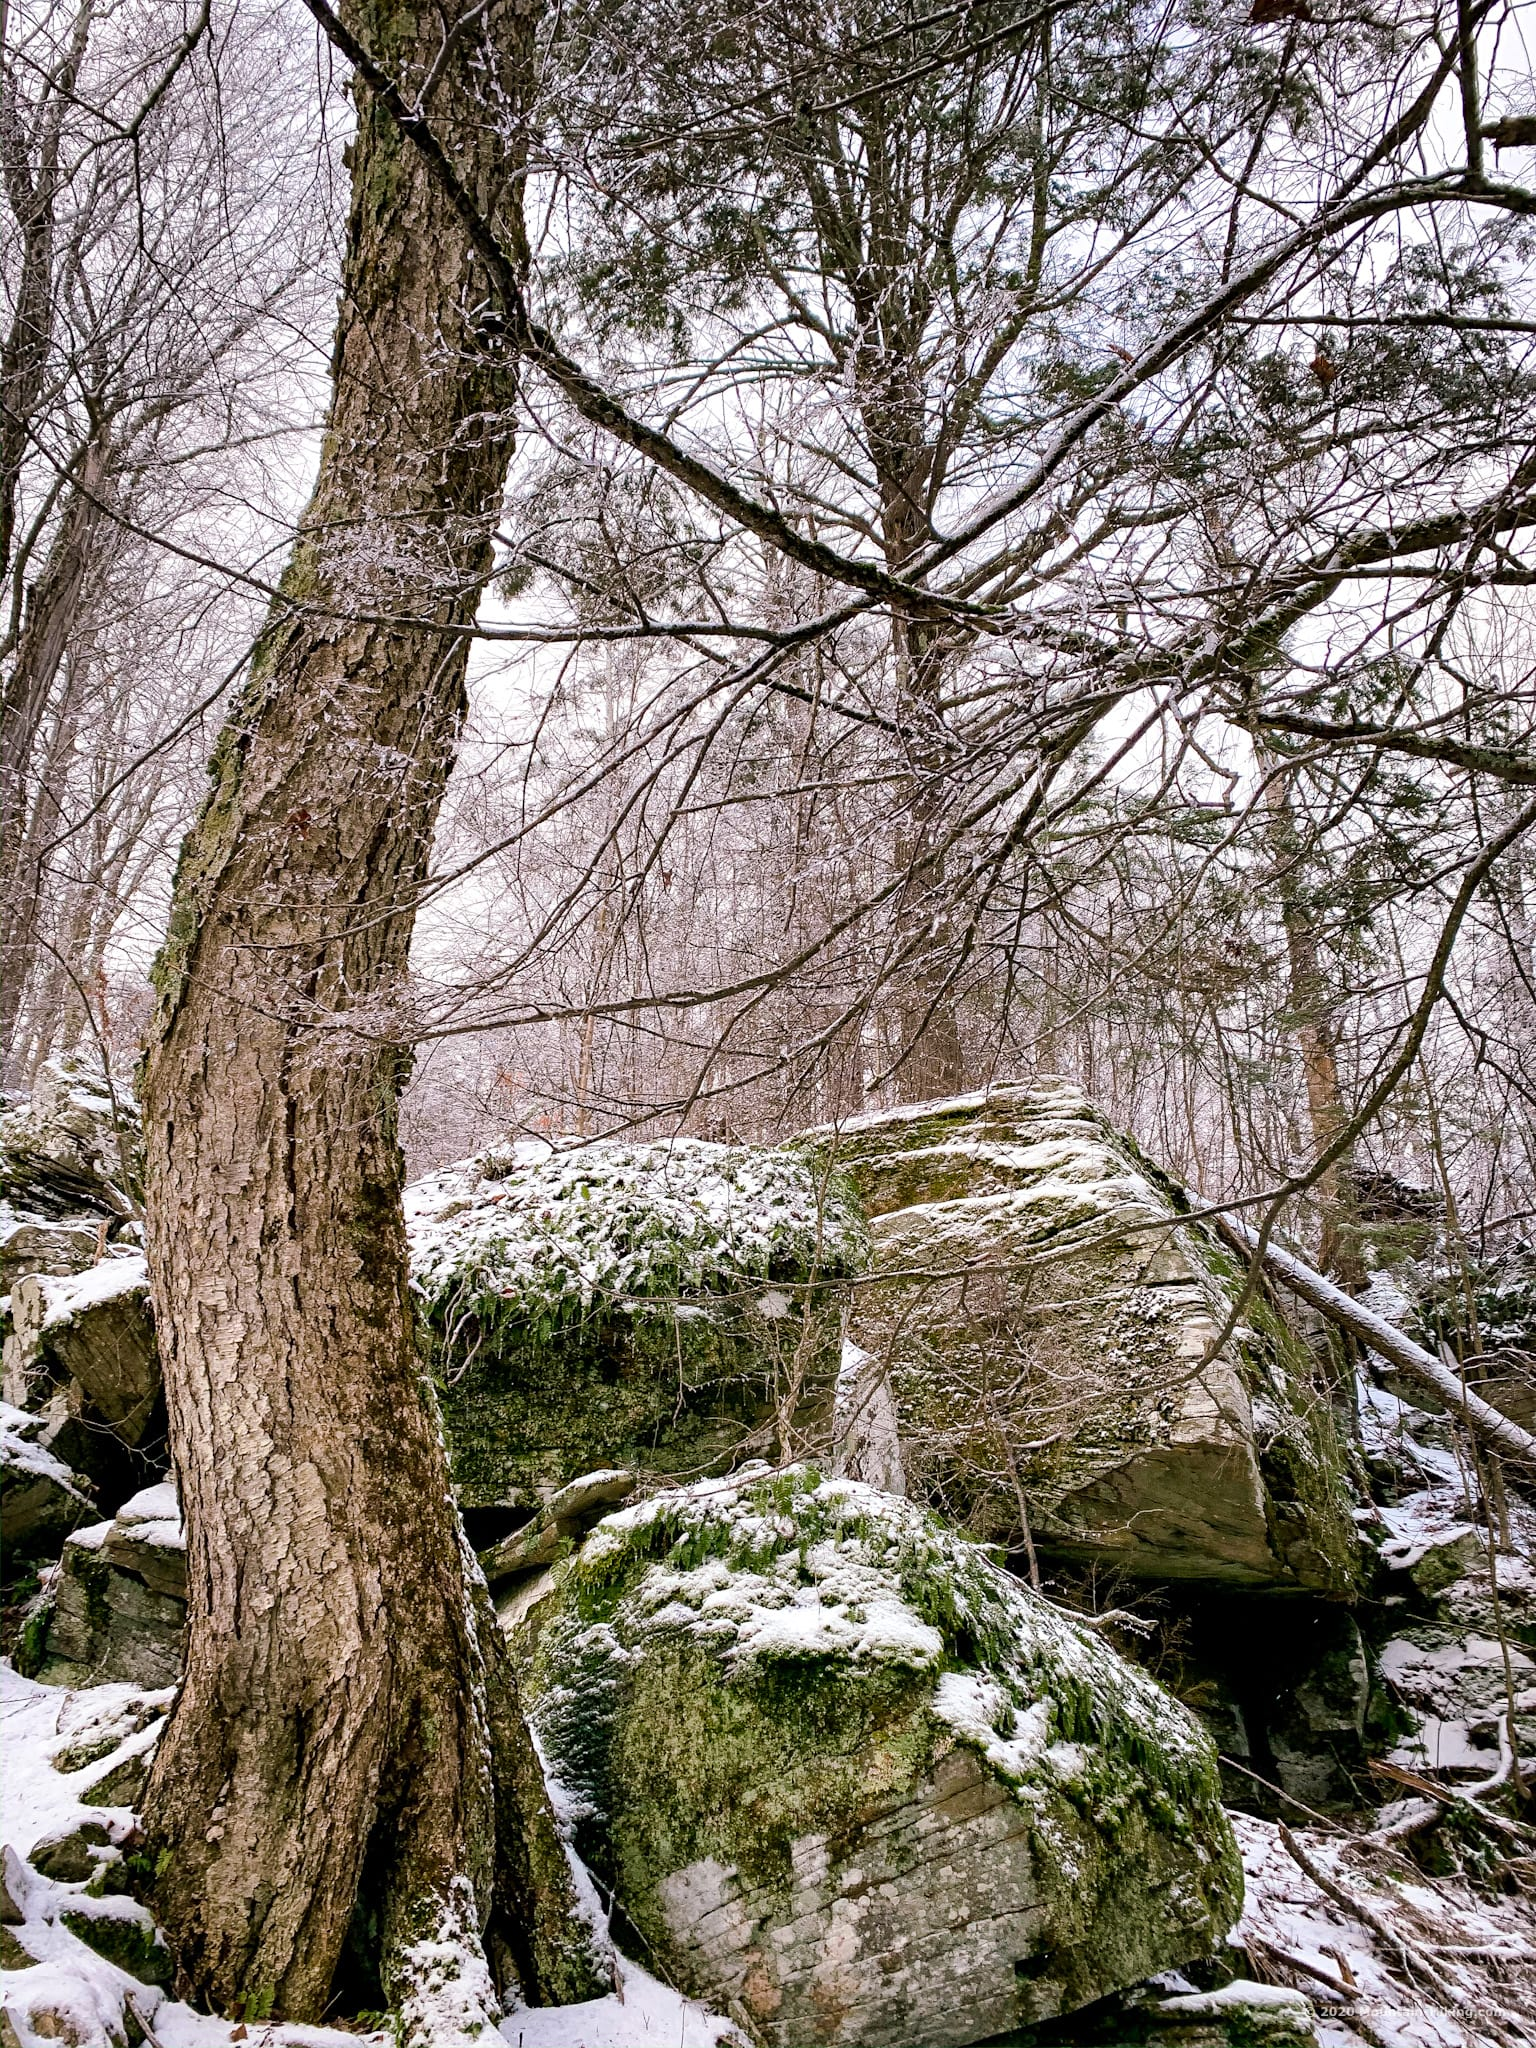 Tree and boulders, Catskills, Wittenberg